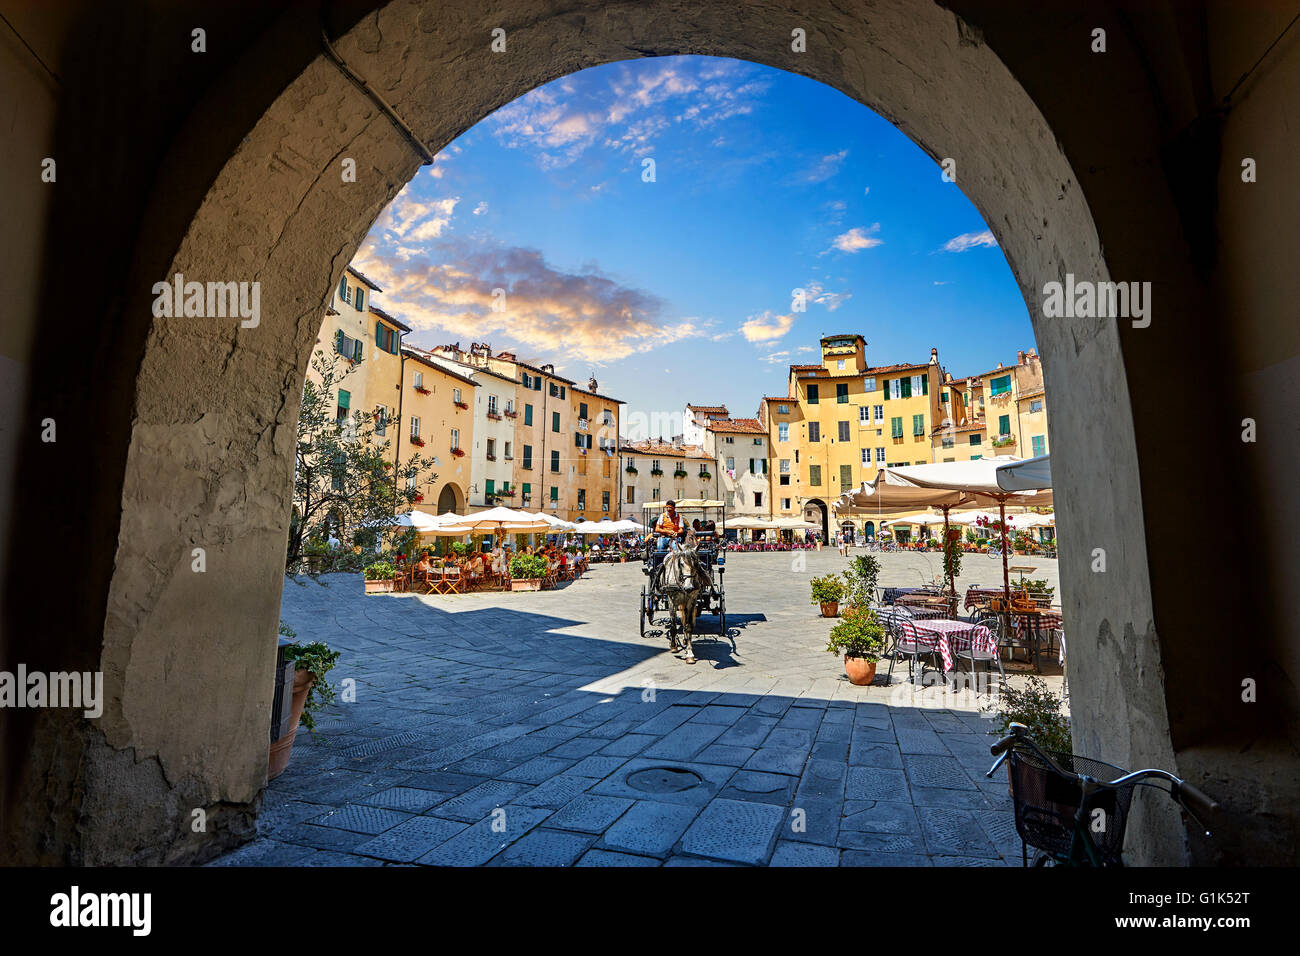 Piazza dell'Anfiteatro inside the ancient Roman ampitheatre of Lucca, Tuscany, Italy - Stock Image